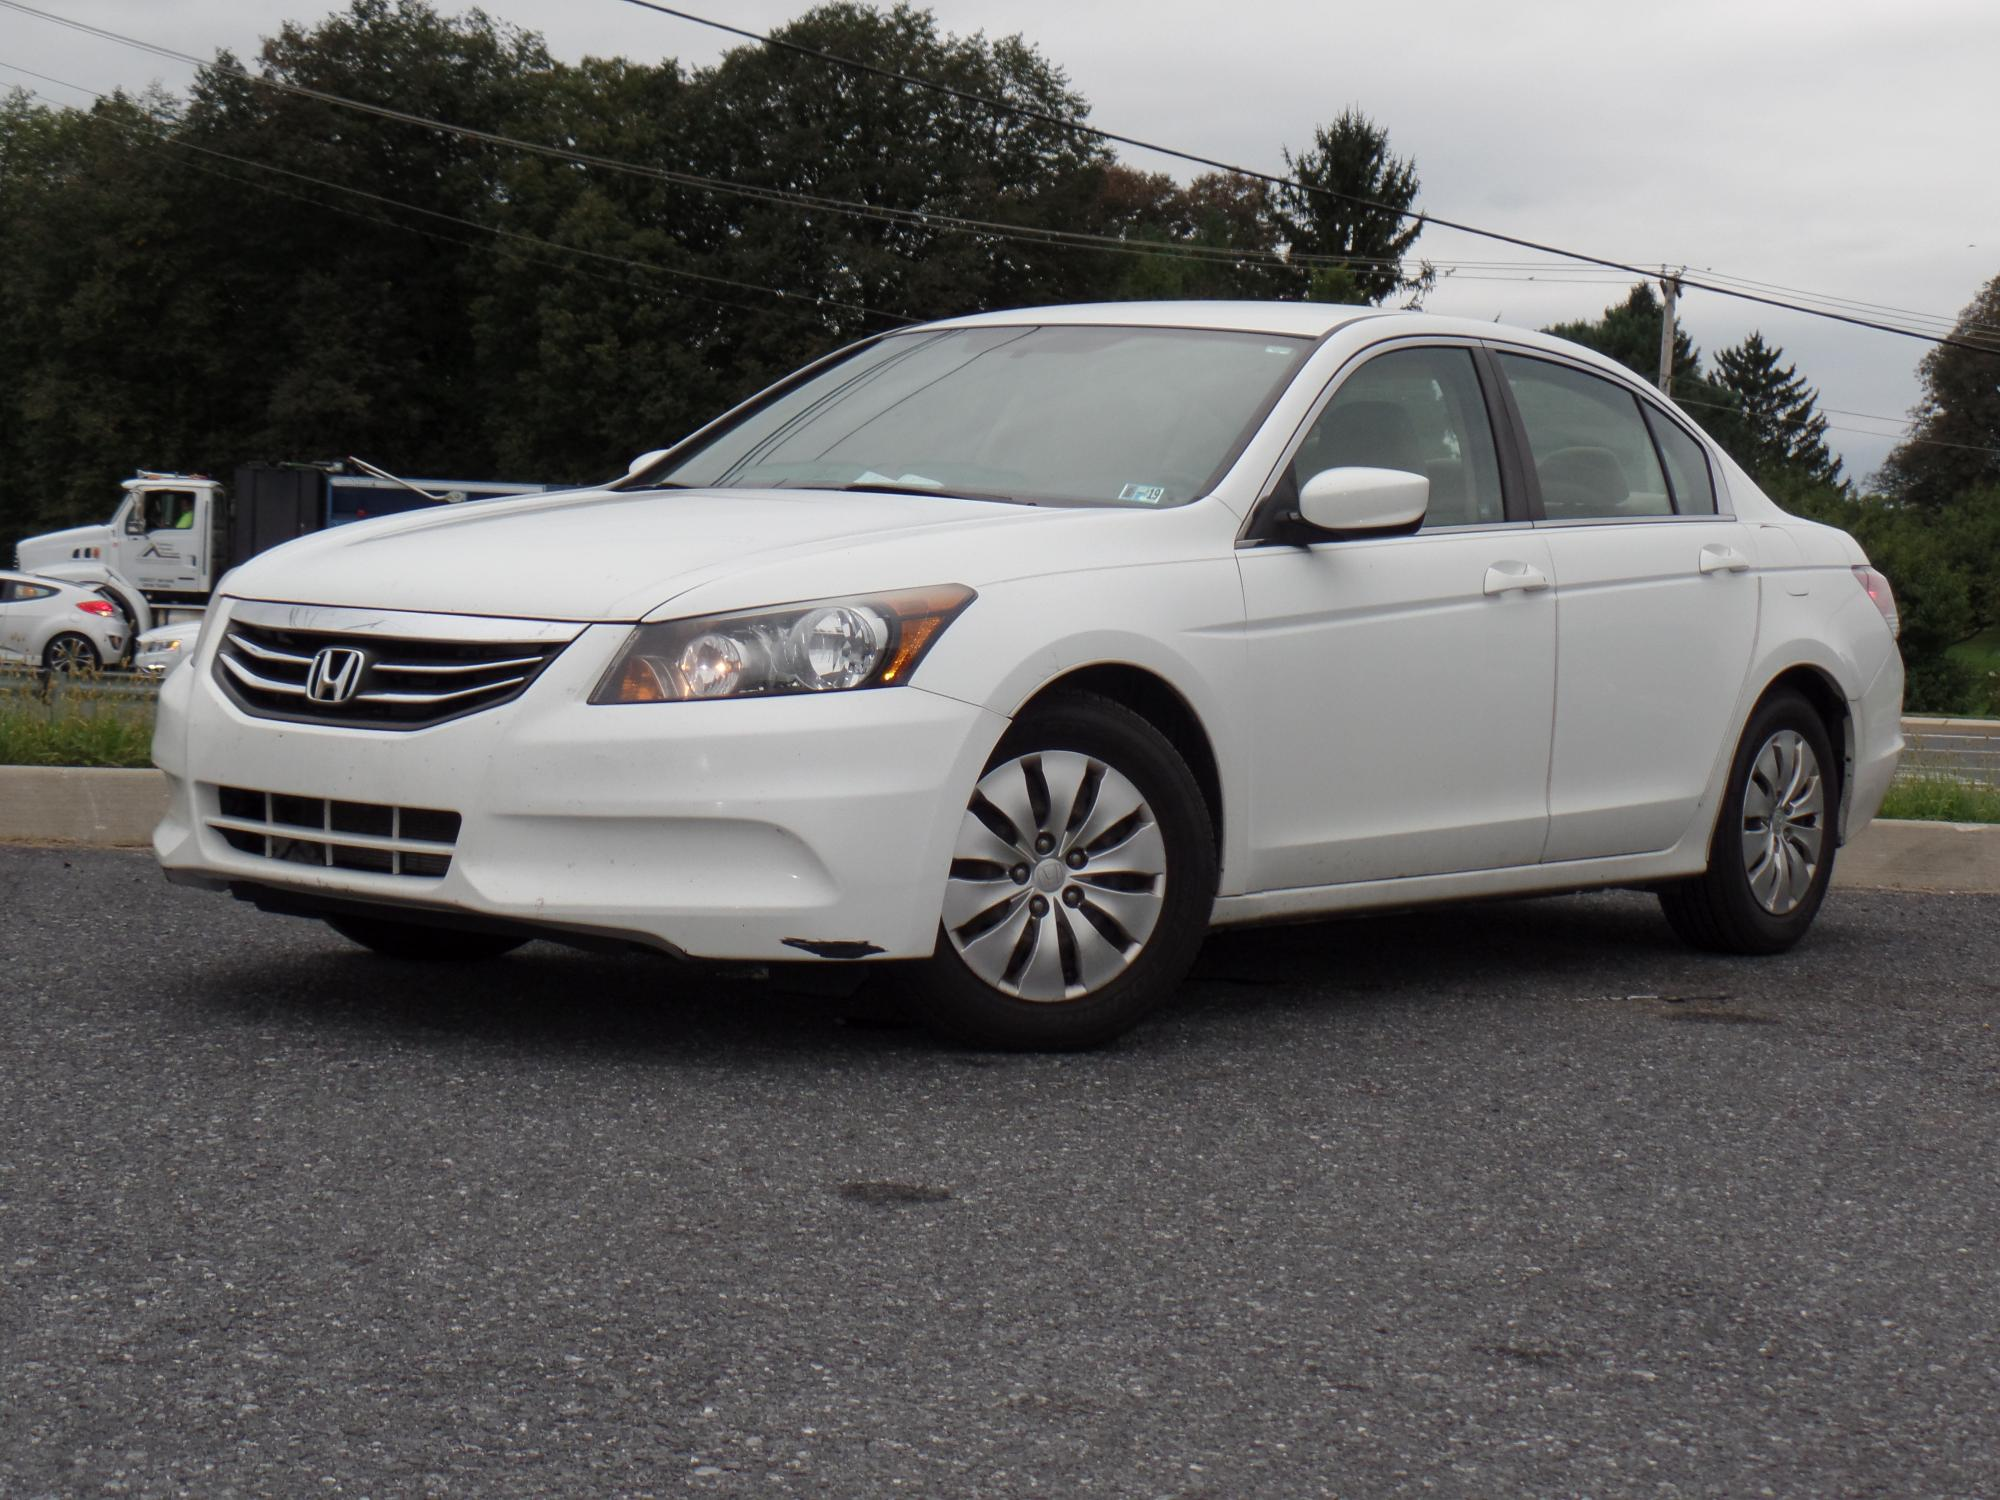 9-21-2018_2012_Honda_Accord_153927__1_.JPG